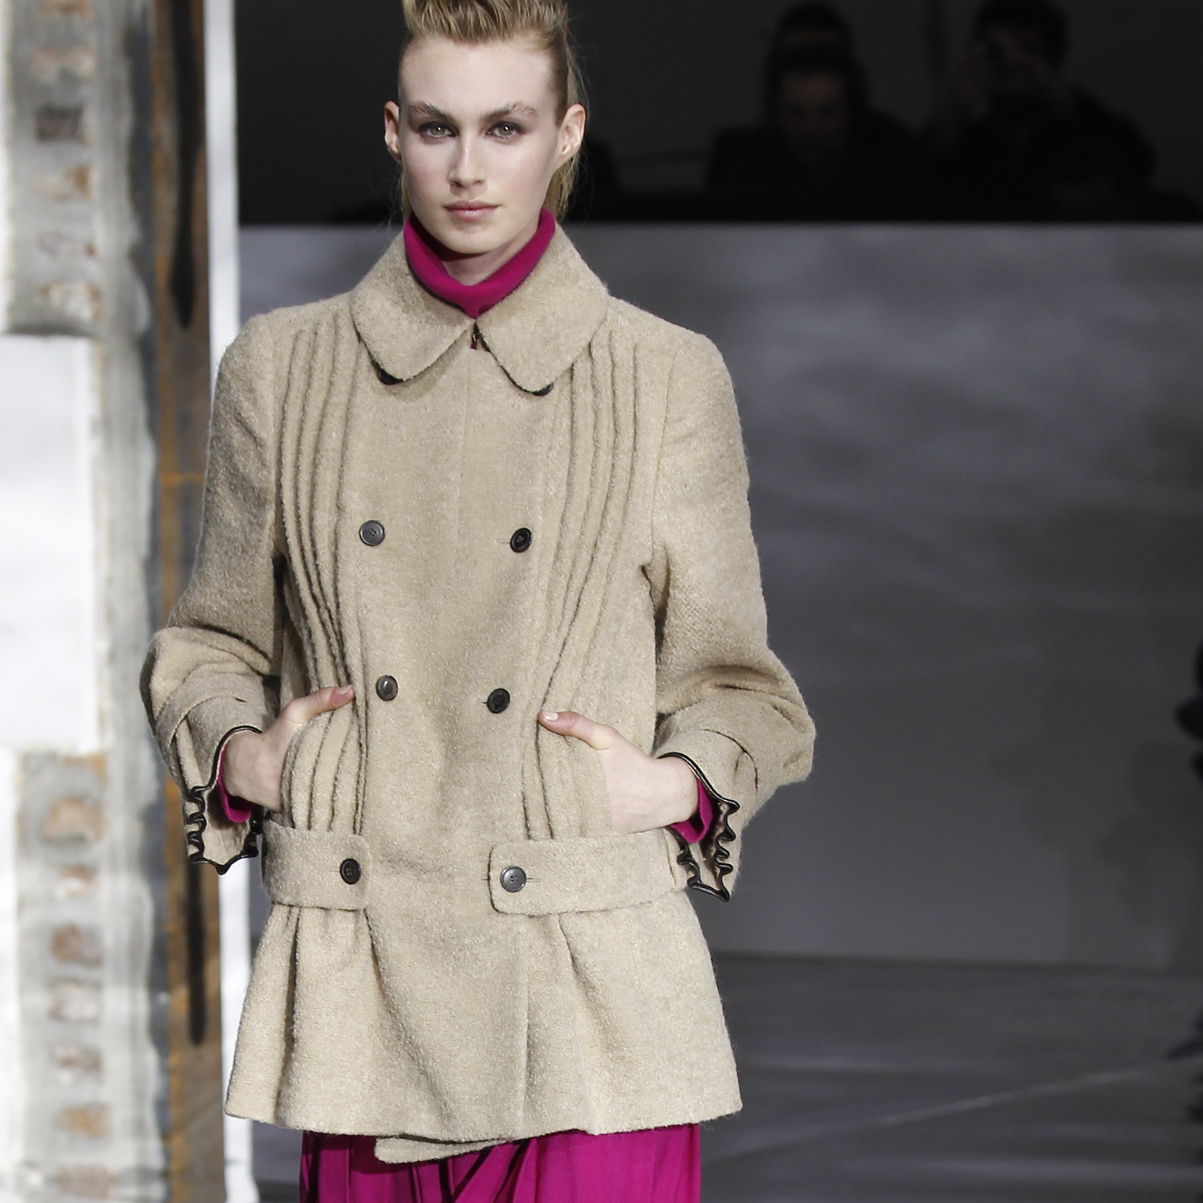 FW13 PARIS FASHION WEEK